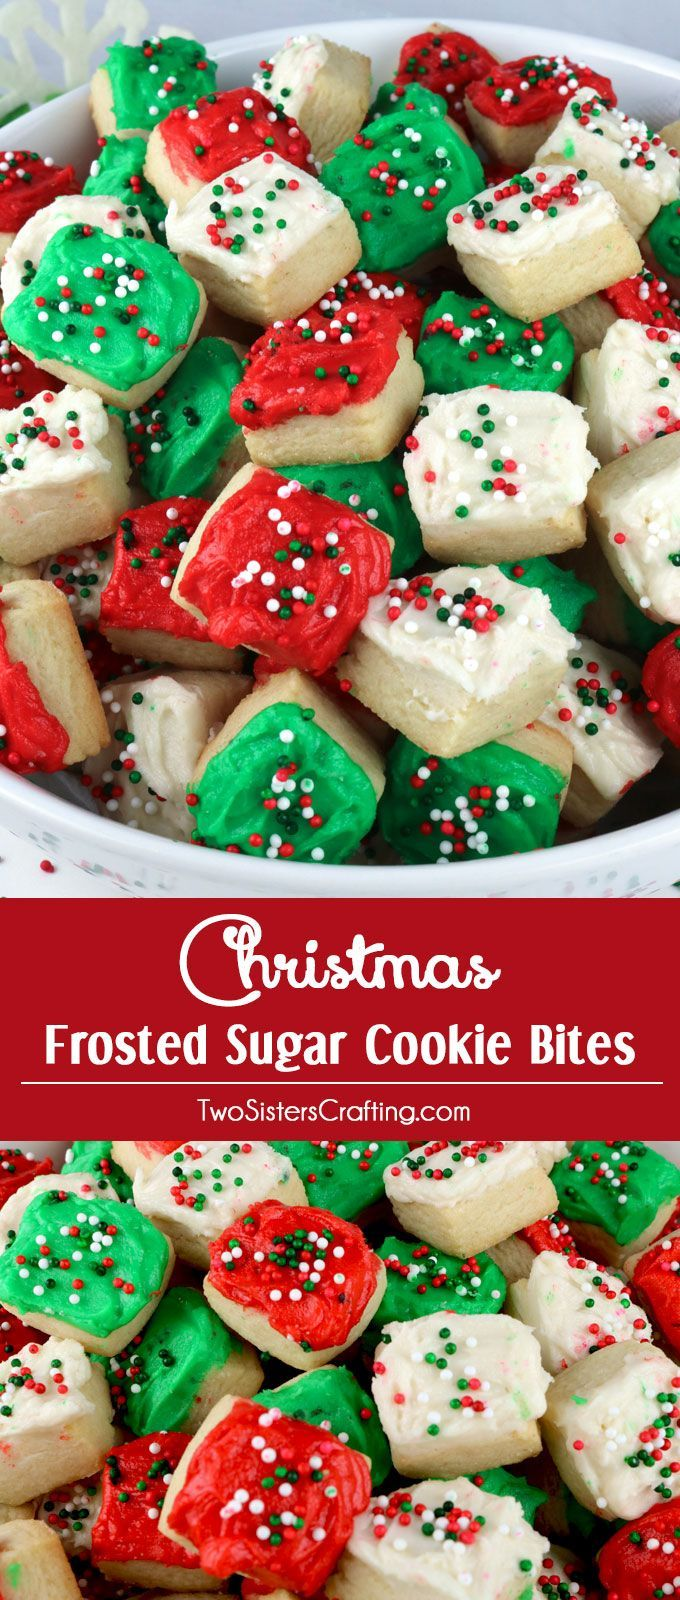 Christmas Sugar Cookie Bites - these yummy Christmas Treats are so easy to decorate that even the youngest family member can join in on the fun. They are a super delicious bite-sized taste of sugar cookie and creamy buttercream frosting. You'll definitely want to add these Christmas Cookies to your Christmas Baking List this year!